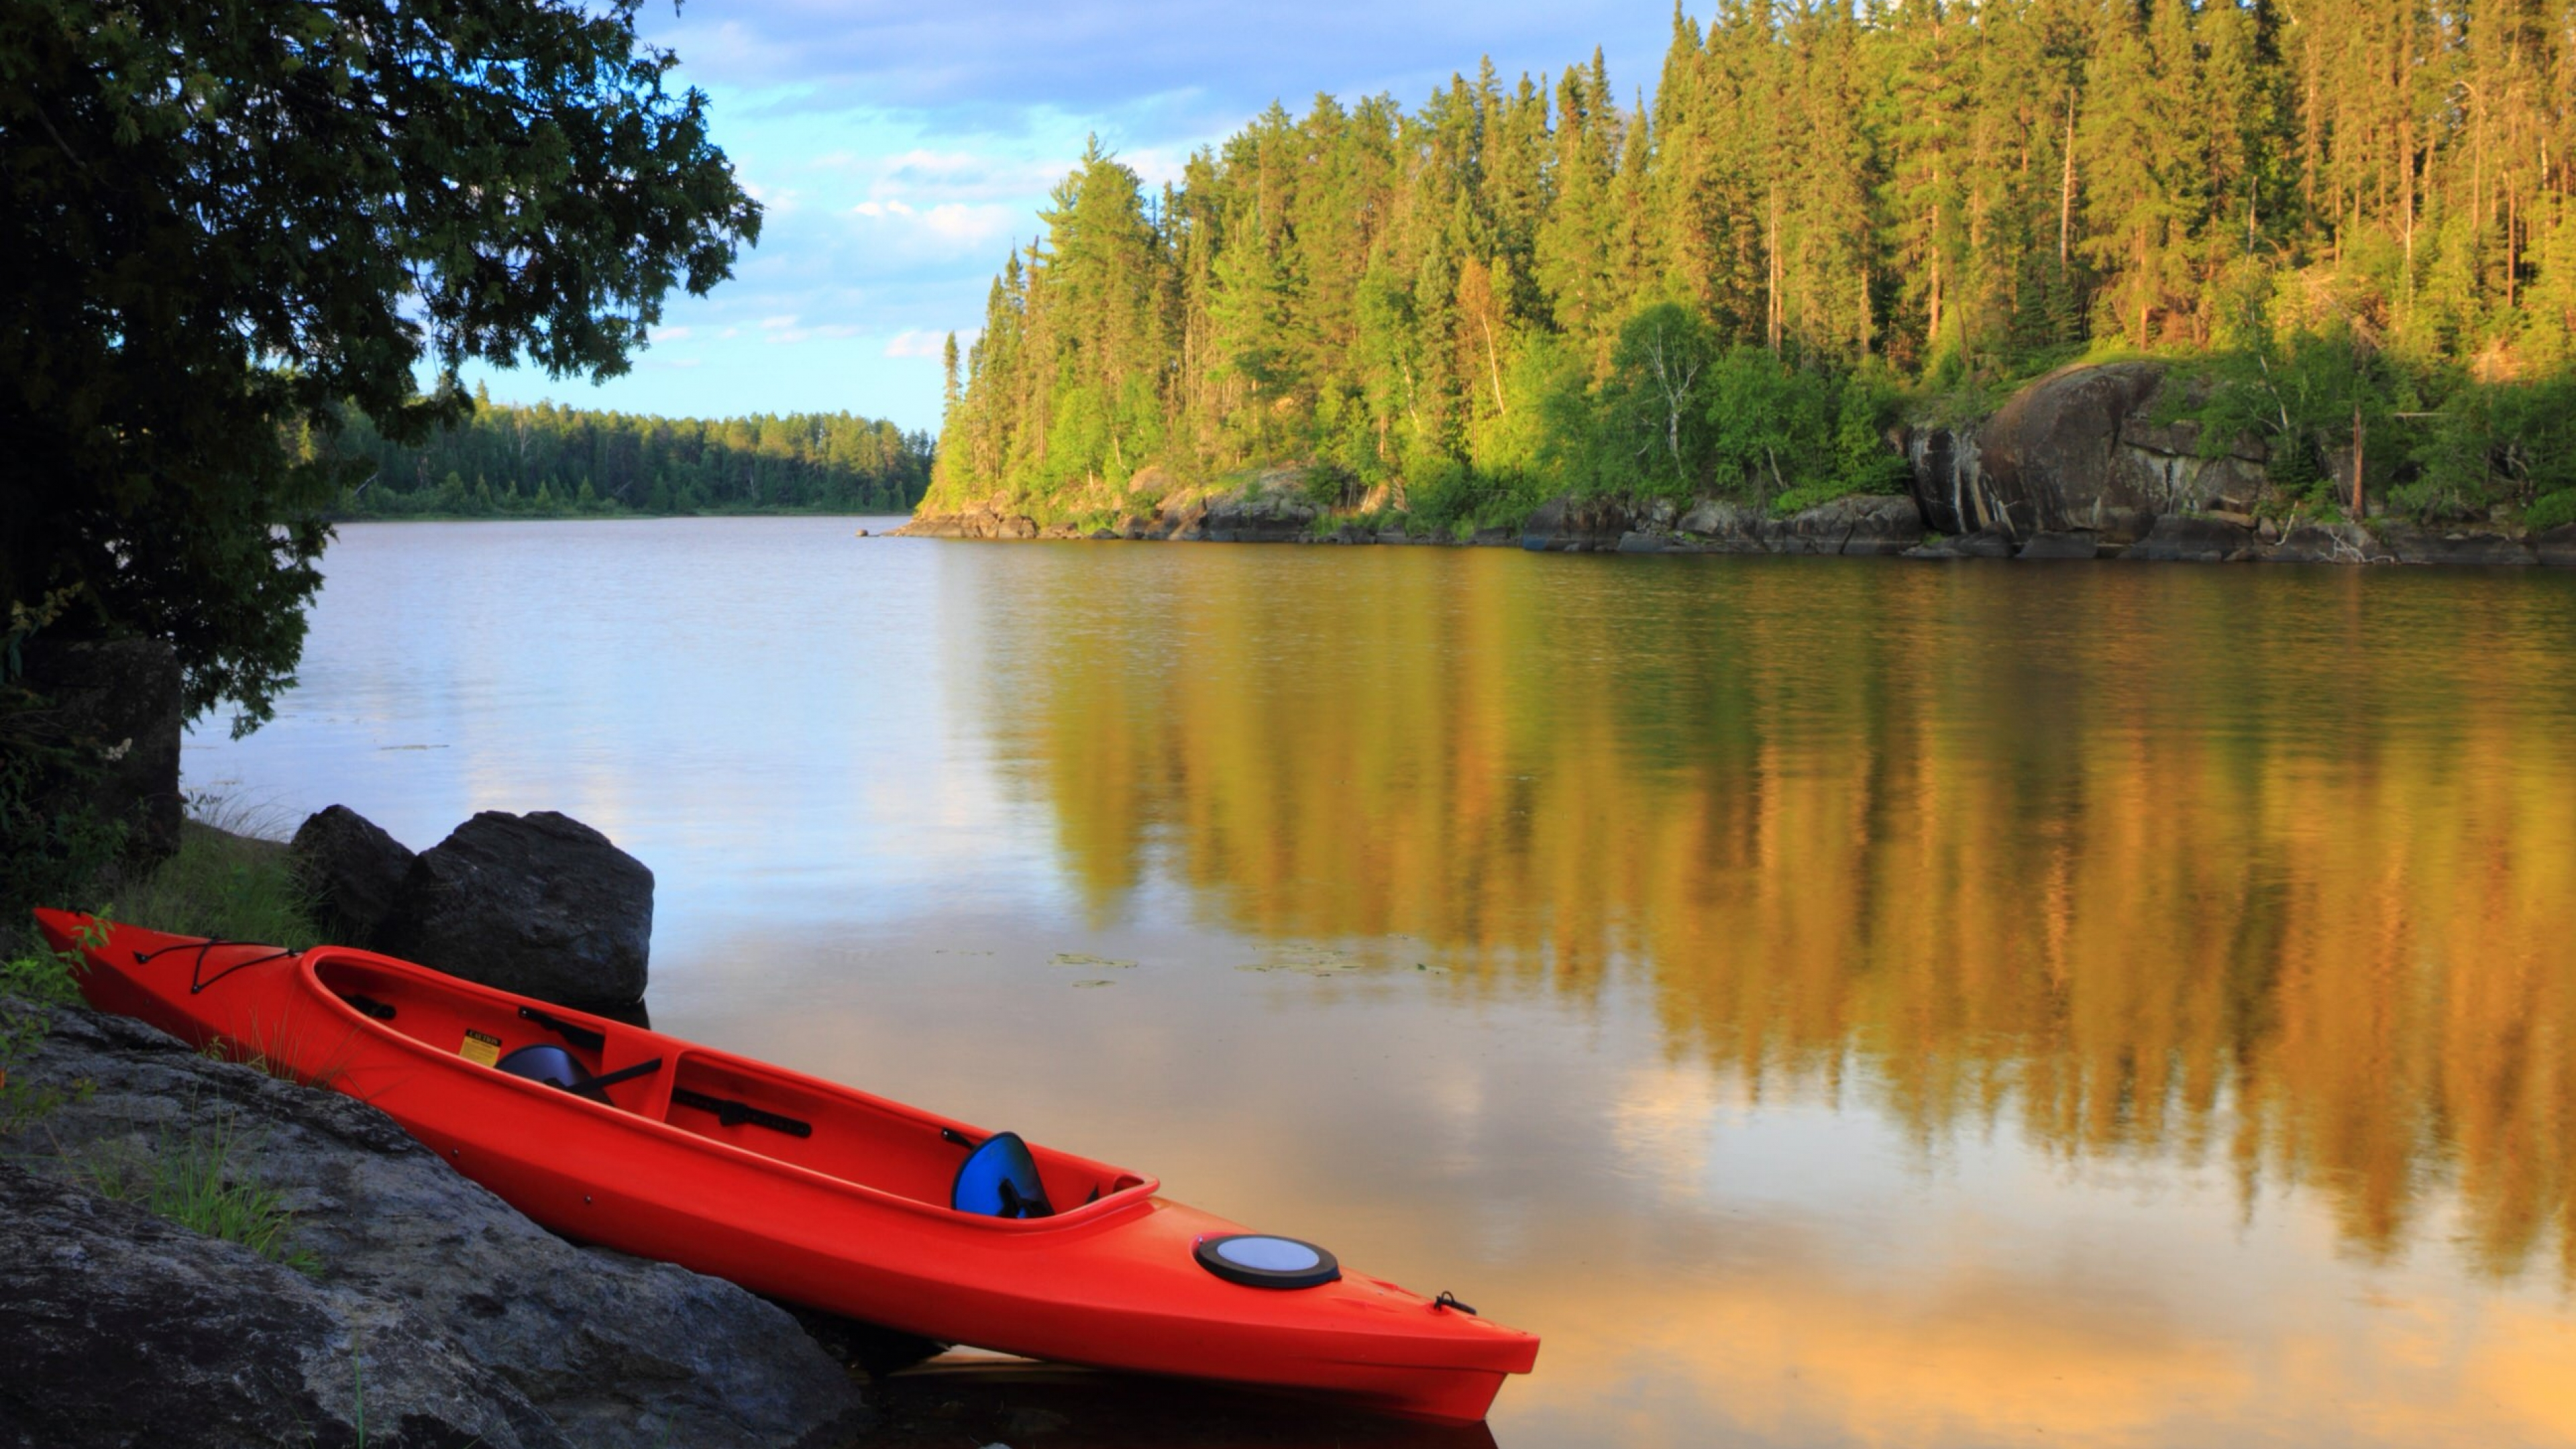 A red canoe on the lake at Voyageurs National Park